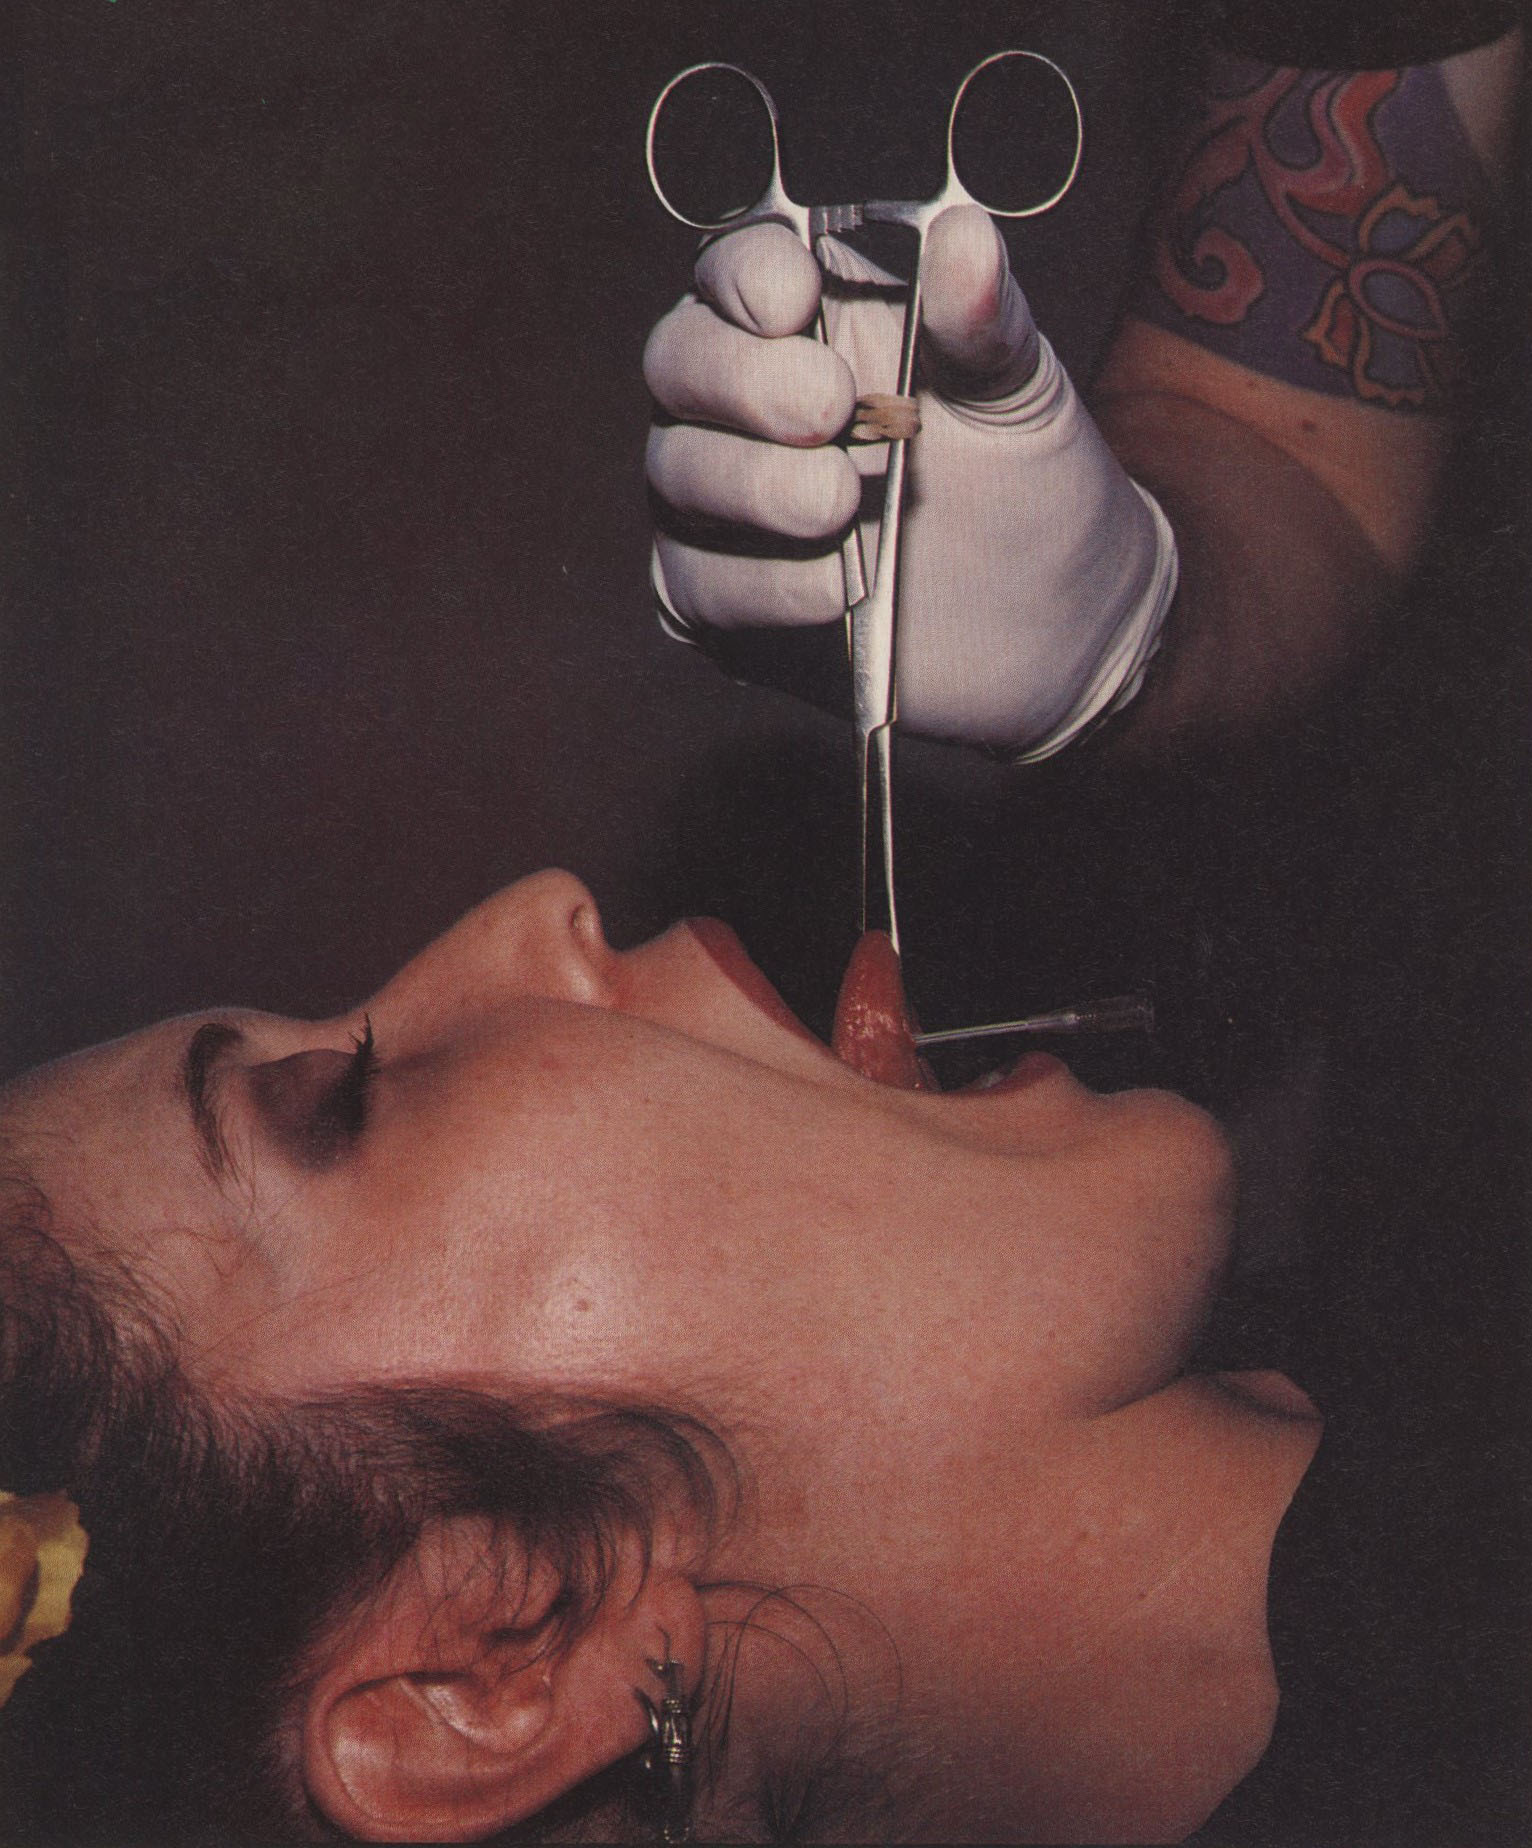 BRIAN LIPPS PIERCING EMPORIUM LONDON PHOTOGRAPHY JONATHAN WORTH i-D THE OUTRAGE ISSUE NO.171 DECEMBER 1997